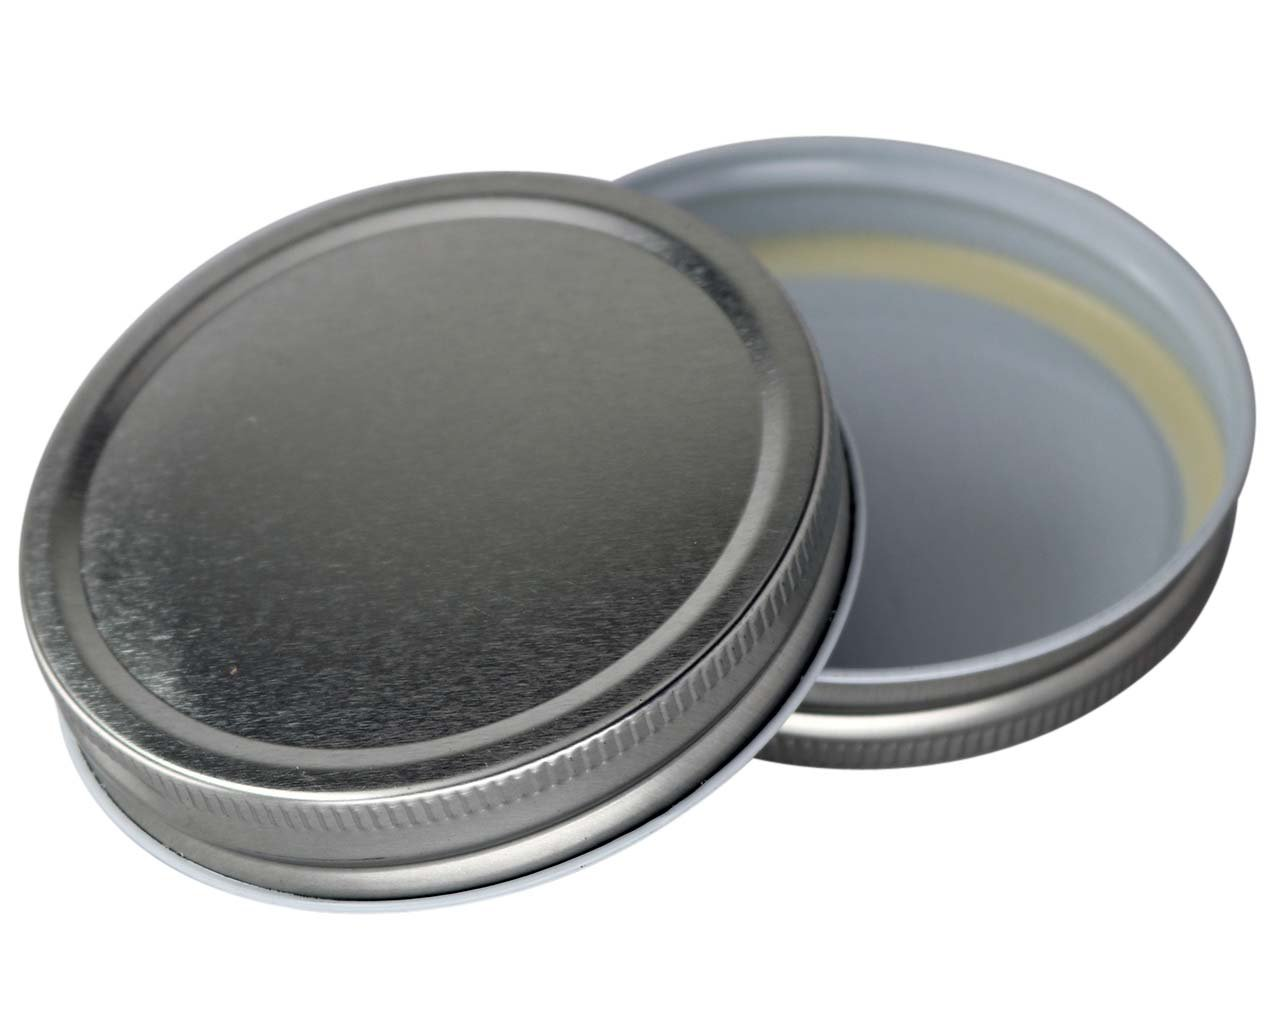 Shiny Metal One Piece Storage Lids Caps for Mason Jars (12 Pack, Wide Mouth)